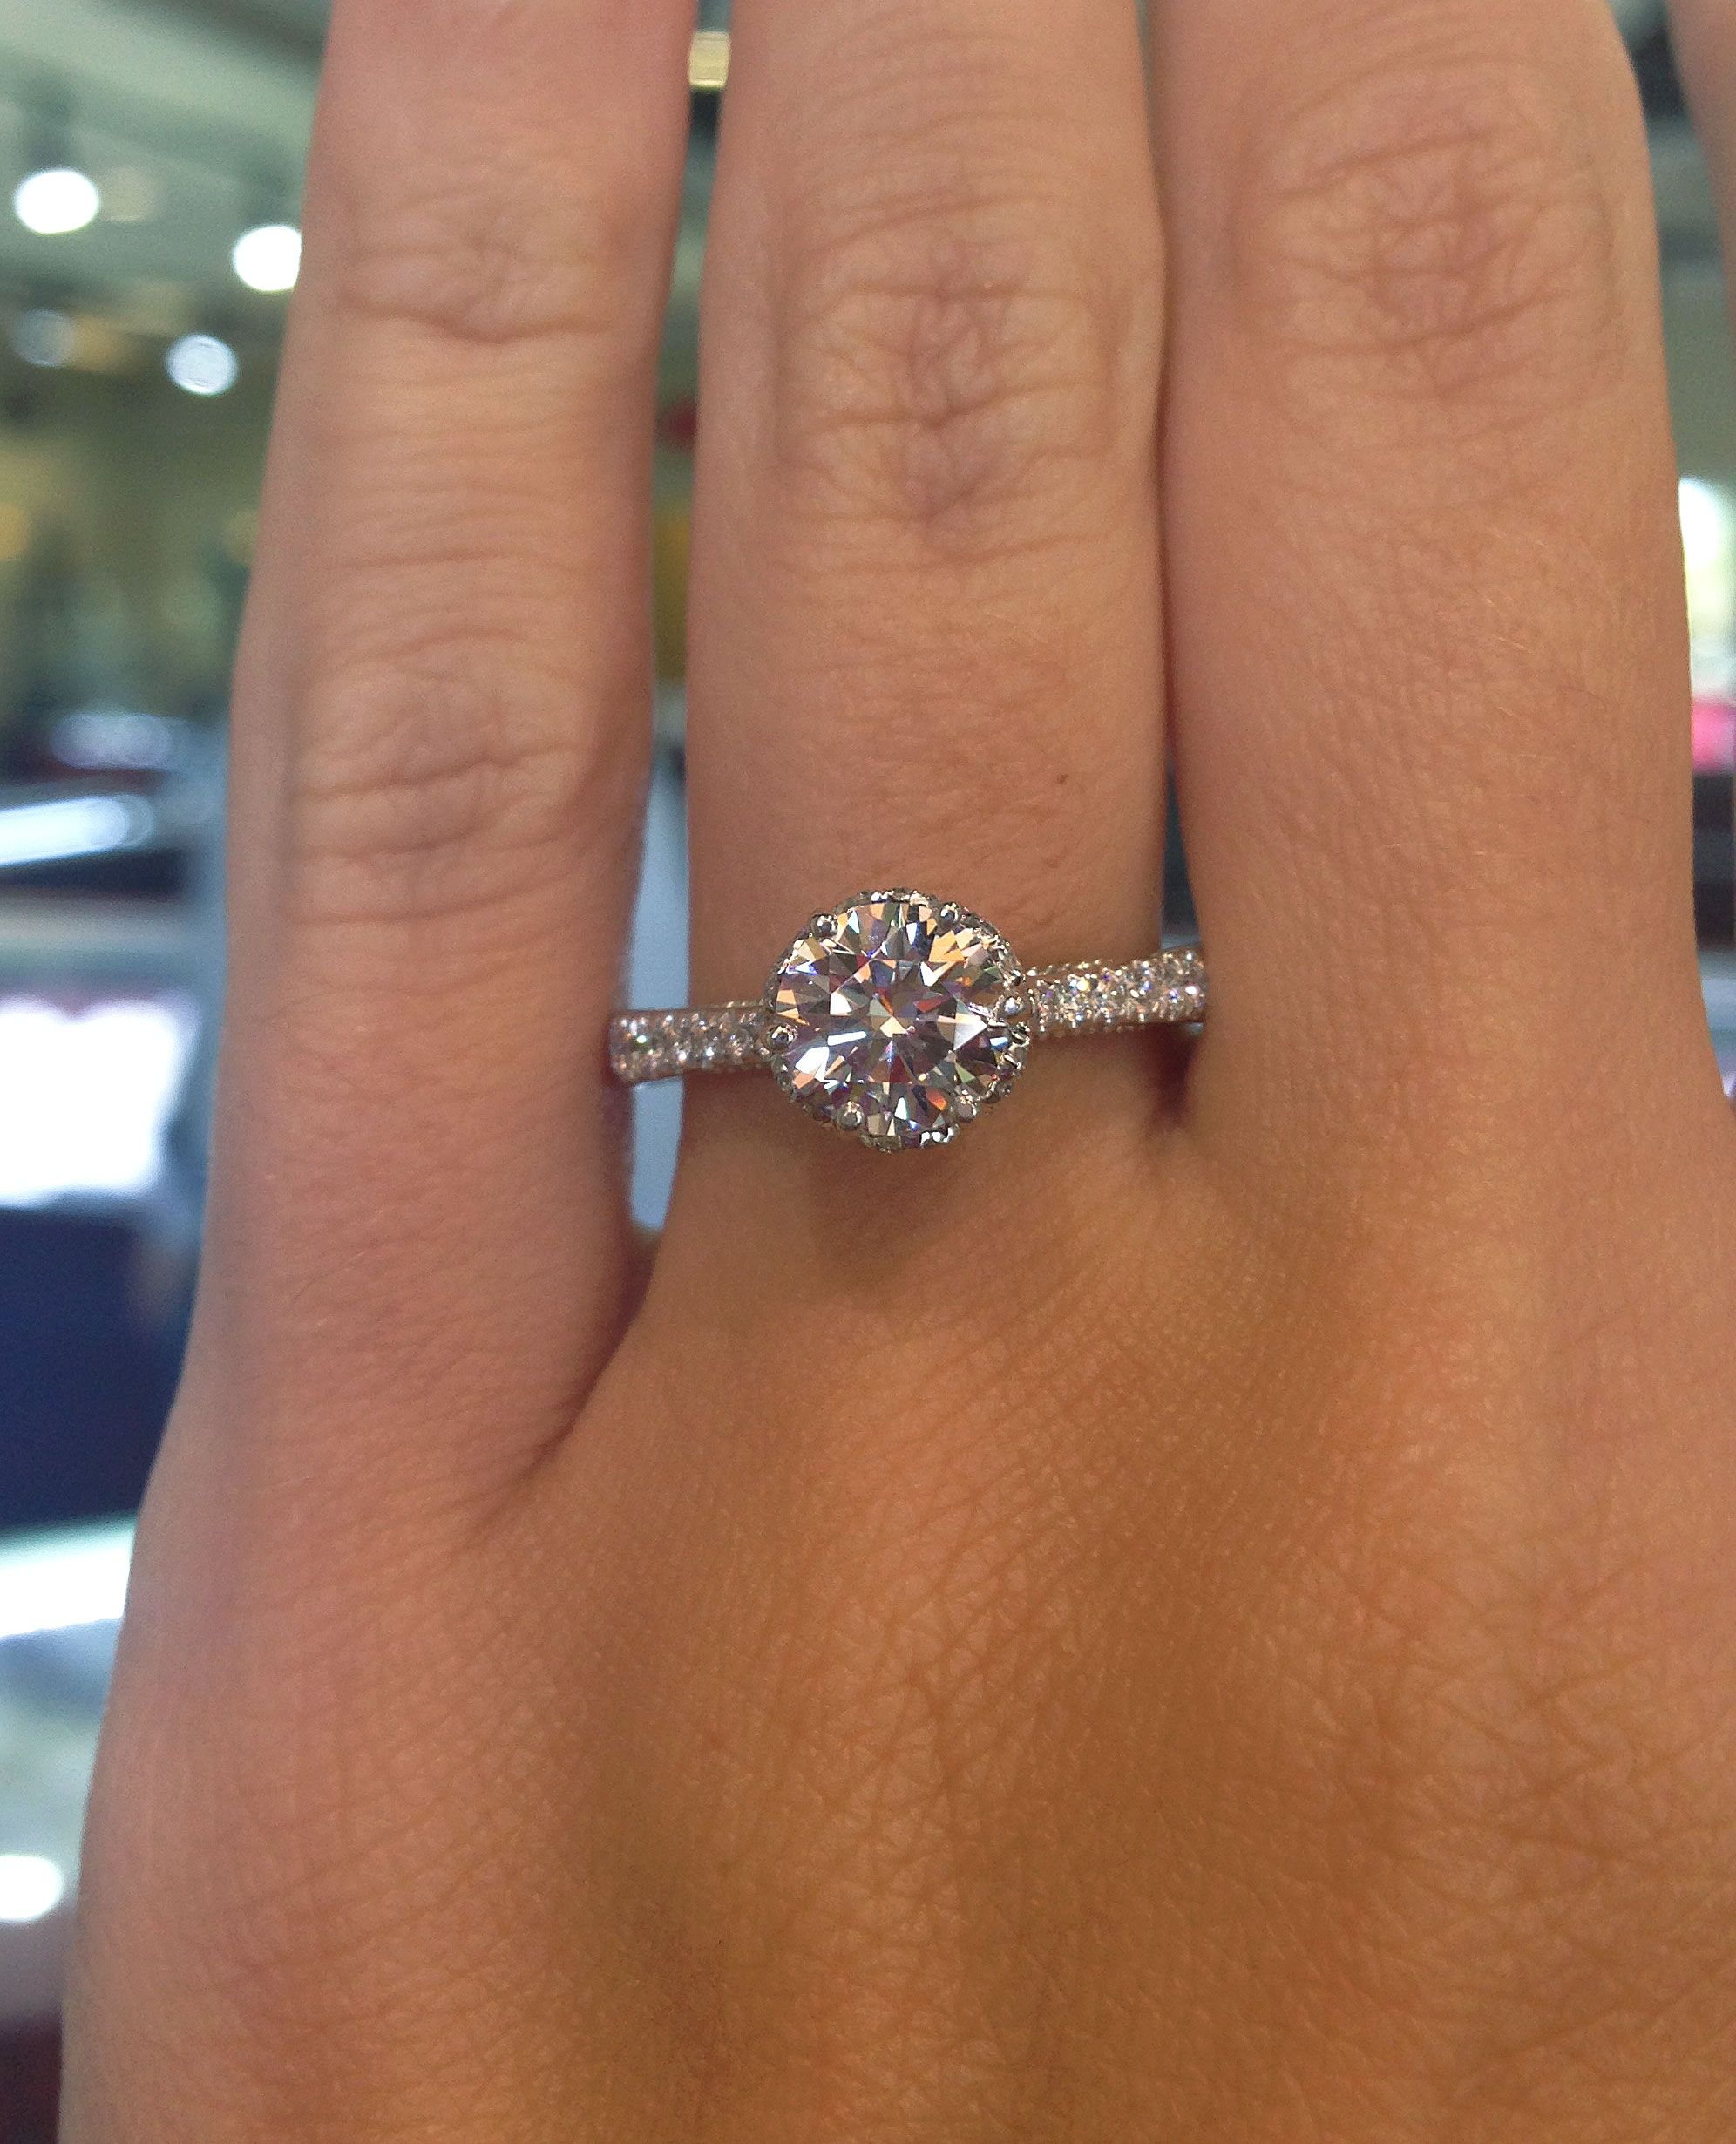 engagementringsre rings micro from tcw in pave cfm engagement row ring three nyc platinum mdc diamond diamonds